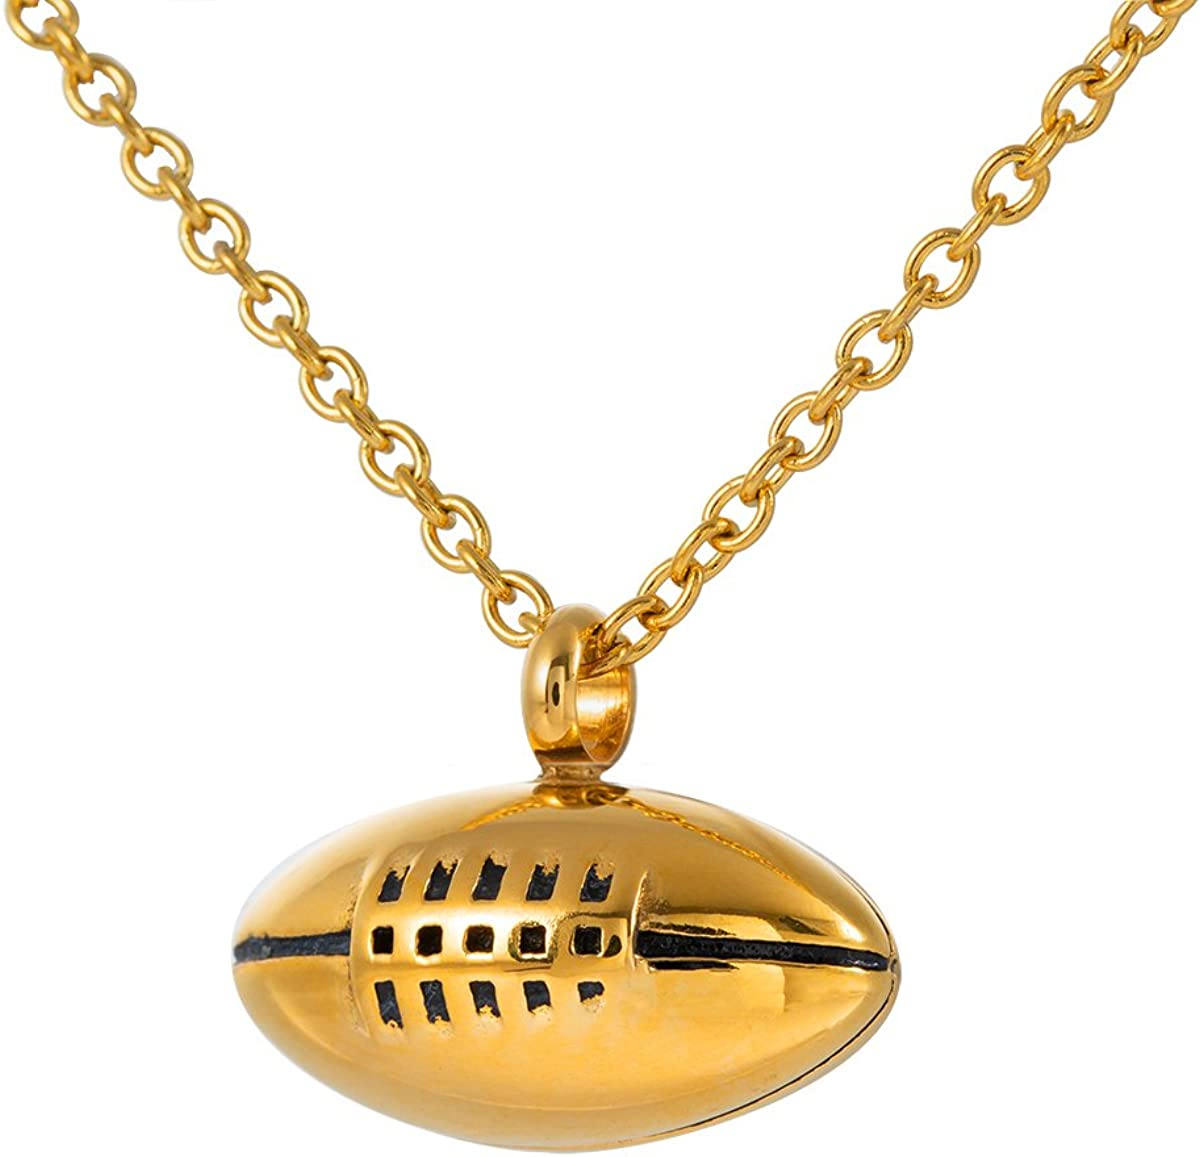 Rugby Pendant Necklace Men Jewelry Fashion Wheat Chain American Style Football Pendant Cremation Jewelry